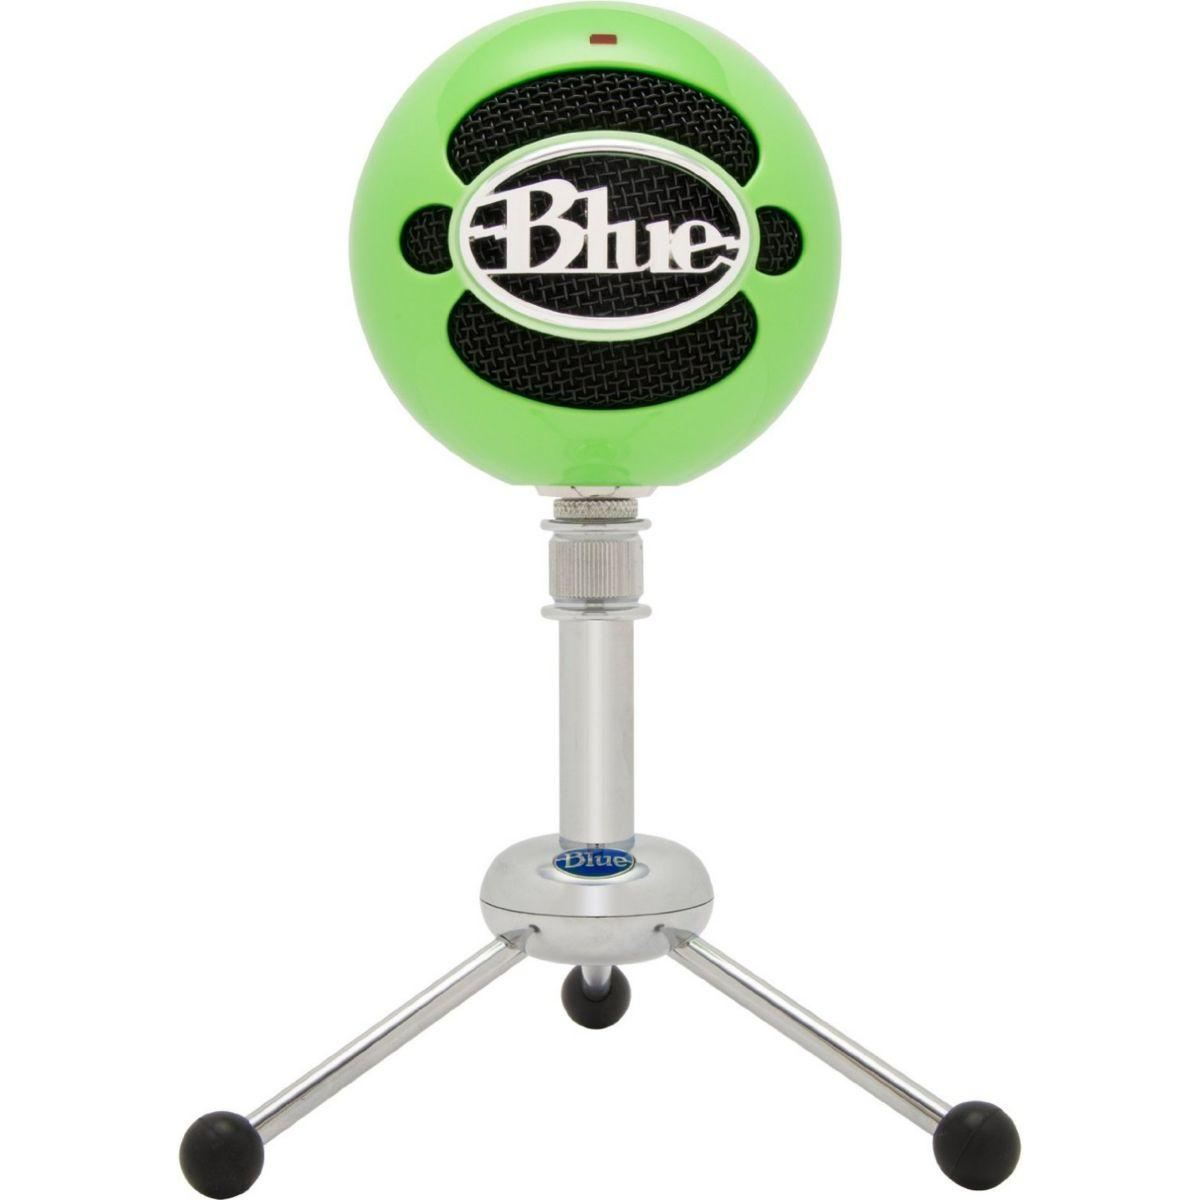 Micro gamer blue microphones snowball vert n�on - 20% de remise imm�diate avec le code : priv20 (photo)